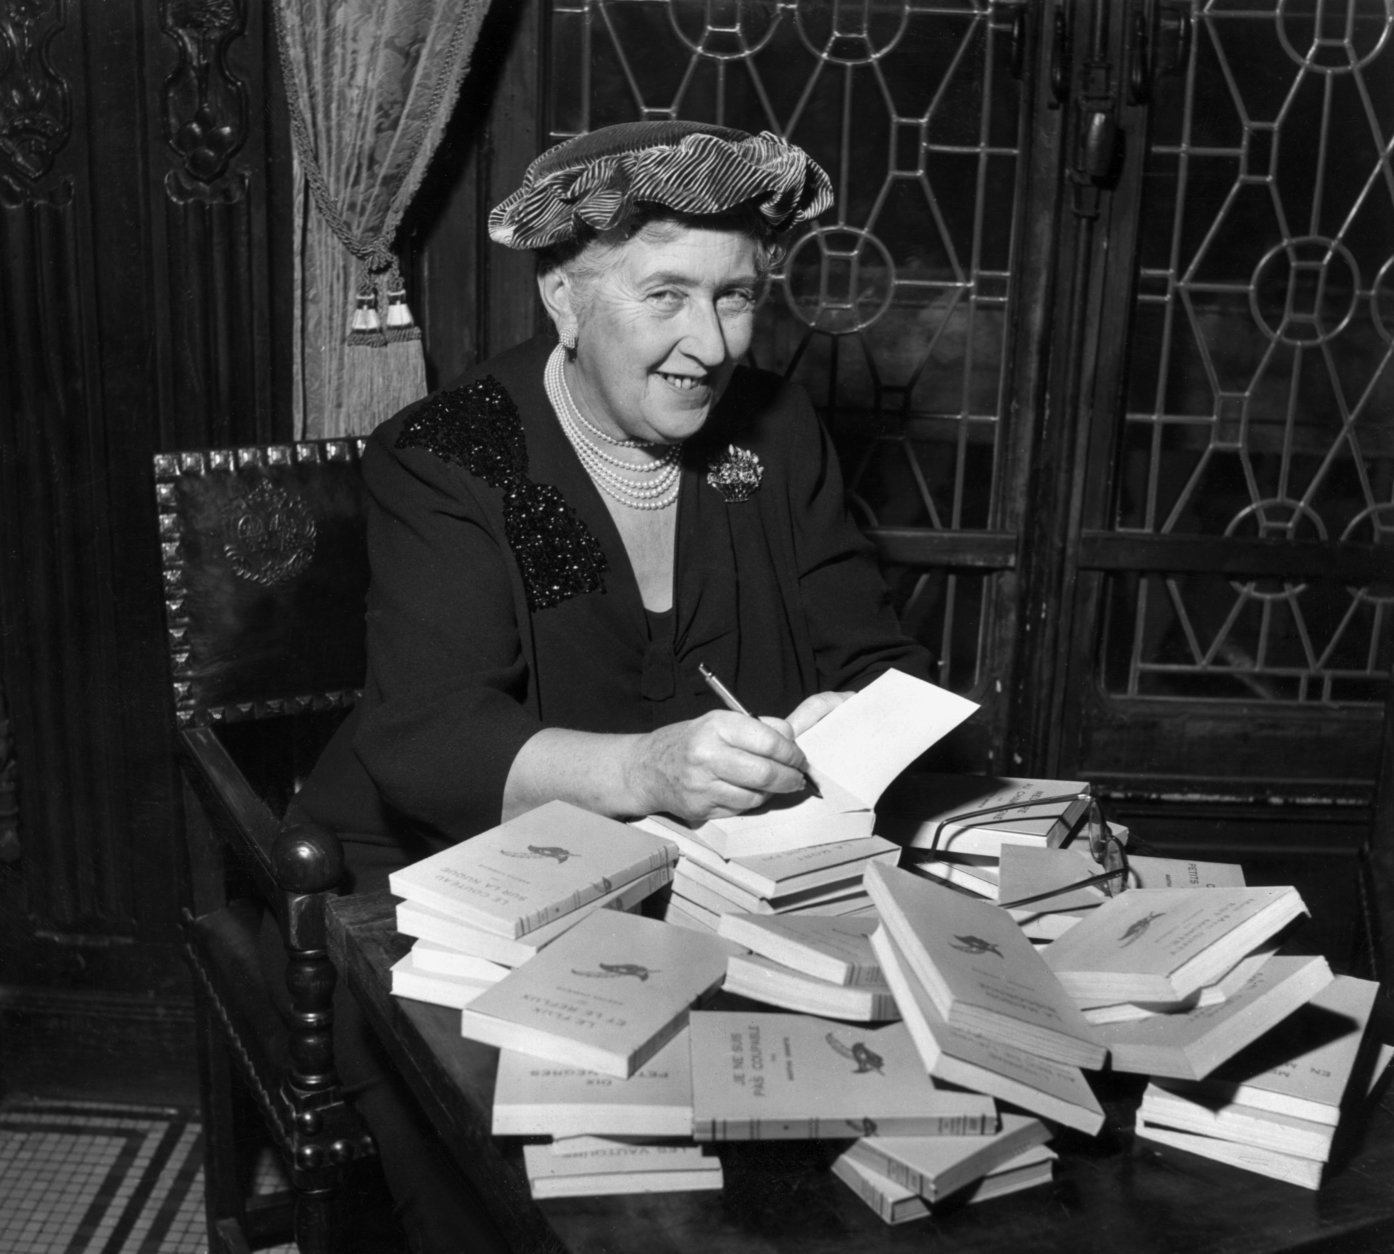 circa 1965:  British mystery author Agatha Christie (1890-1976) autographing French editions of her books.  (Photo by Hulton Archive/Getty Images)